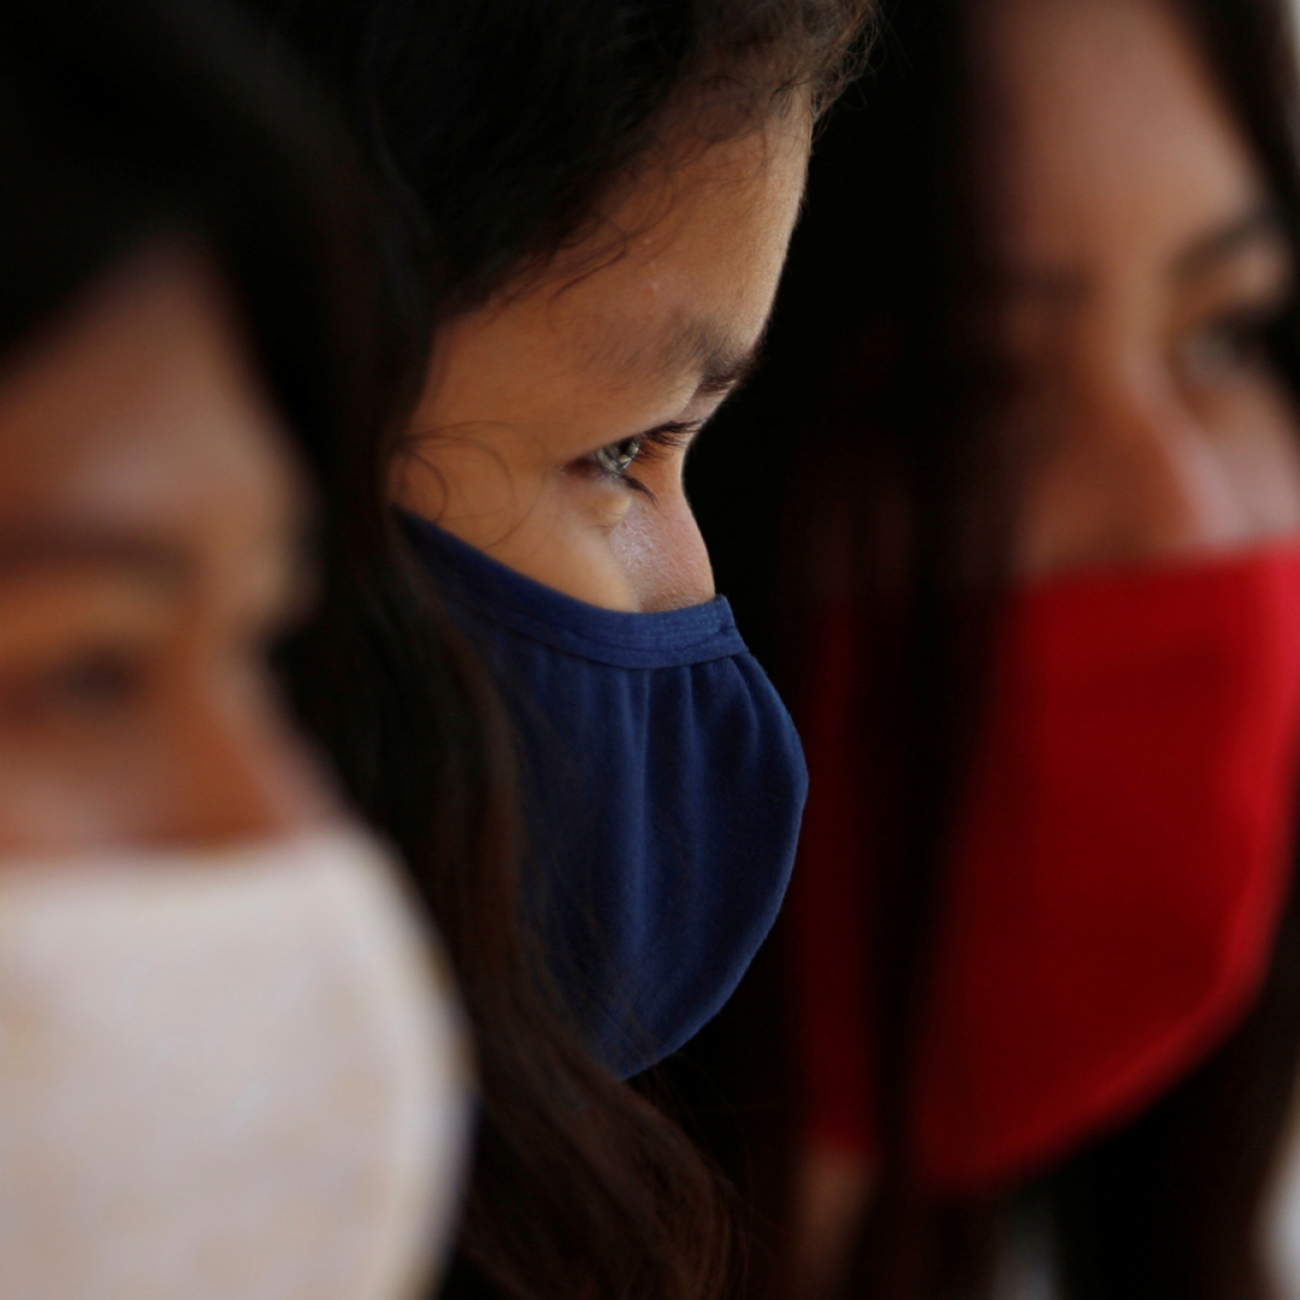 https://www.thinkglobalhealth.org/sites/default/files/styles/max_1300x1300_1_1/public/2021-07/women%20in%20covid%20masks%201.1.png?itok=BRqSTNjH